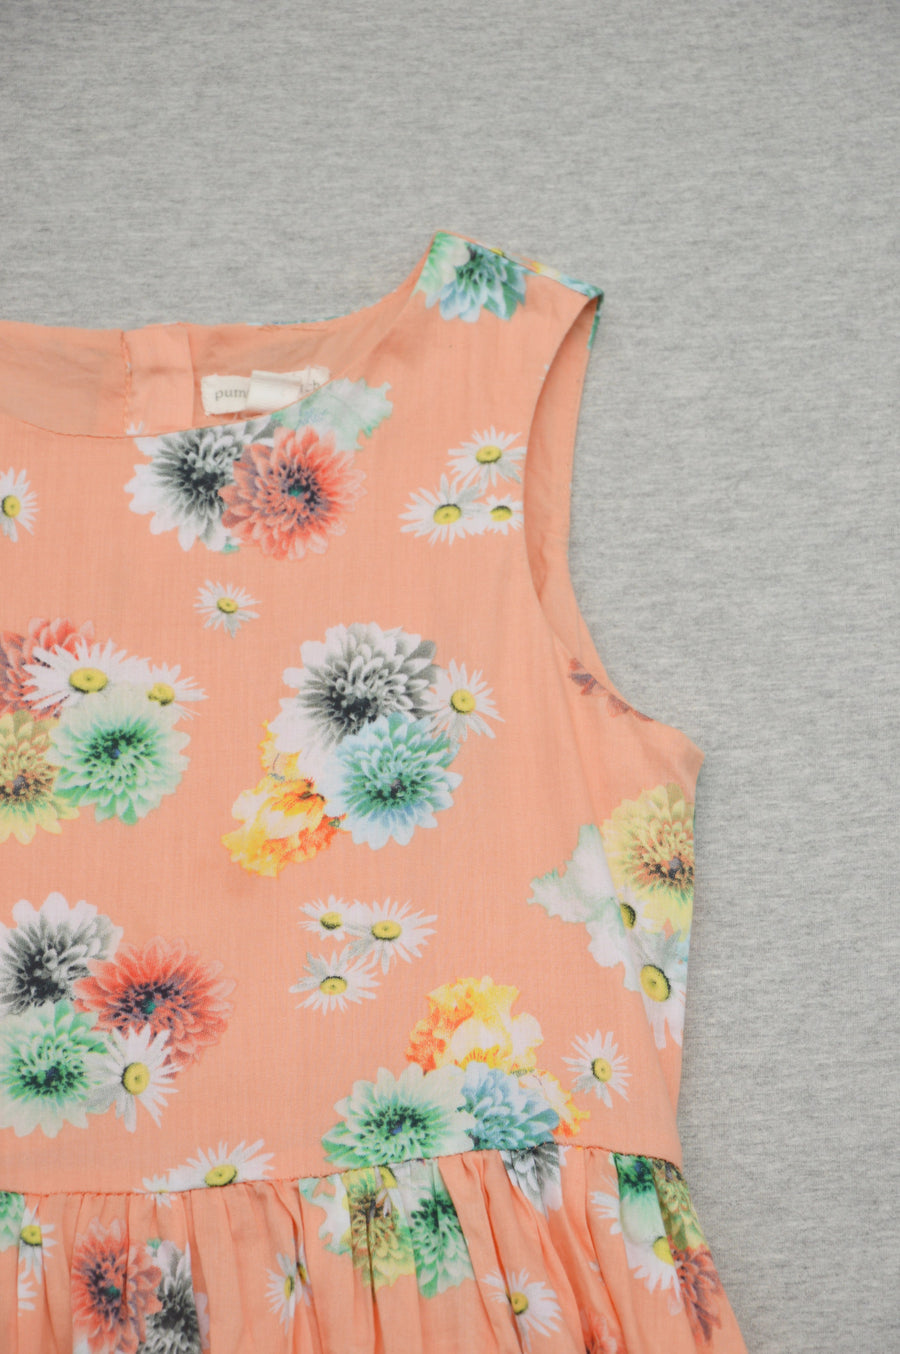 Pumpkin Patch peach floral dress, size 9Y